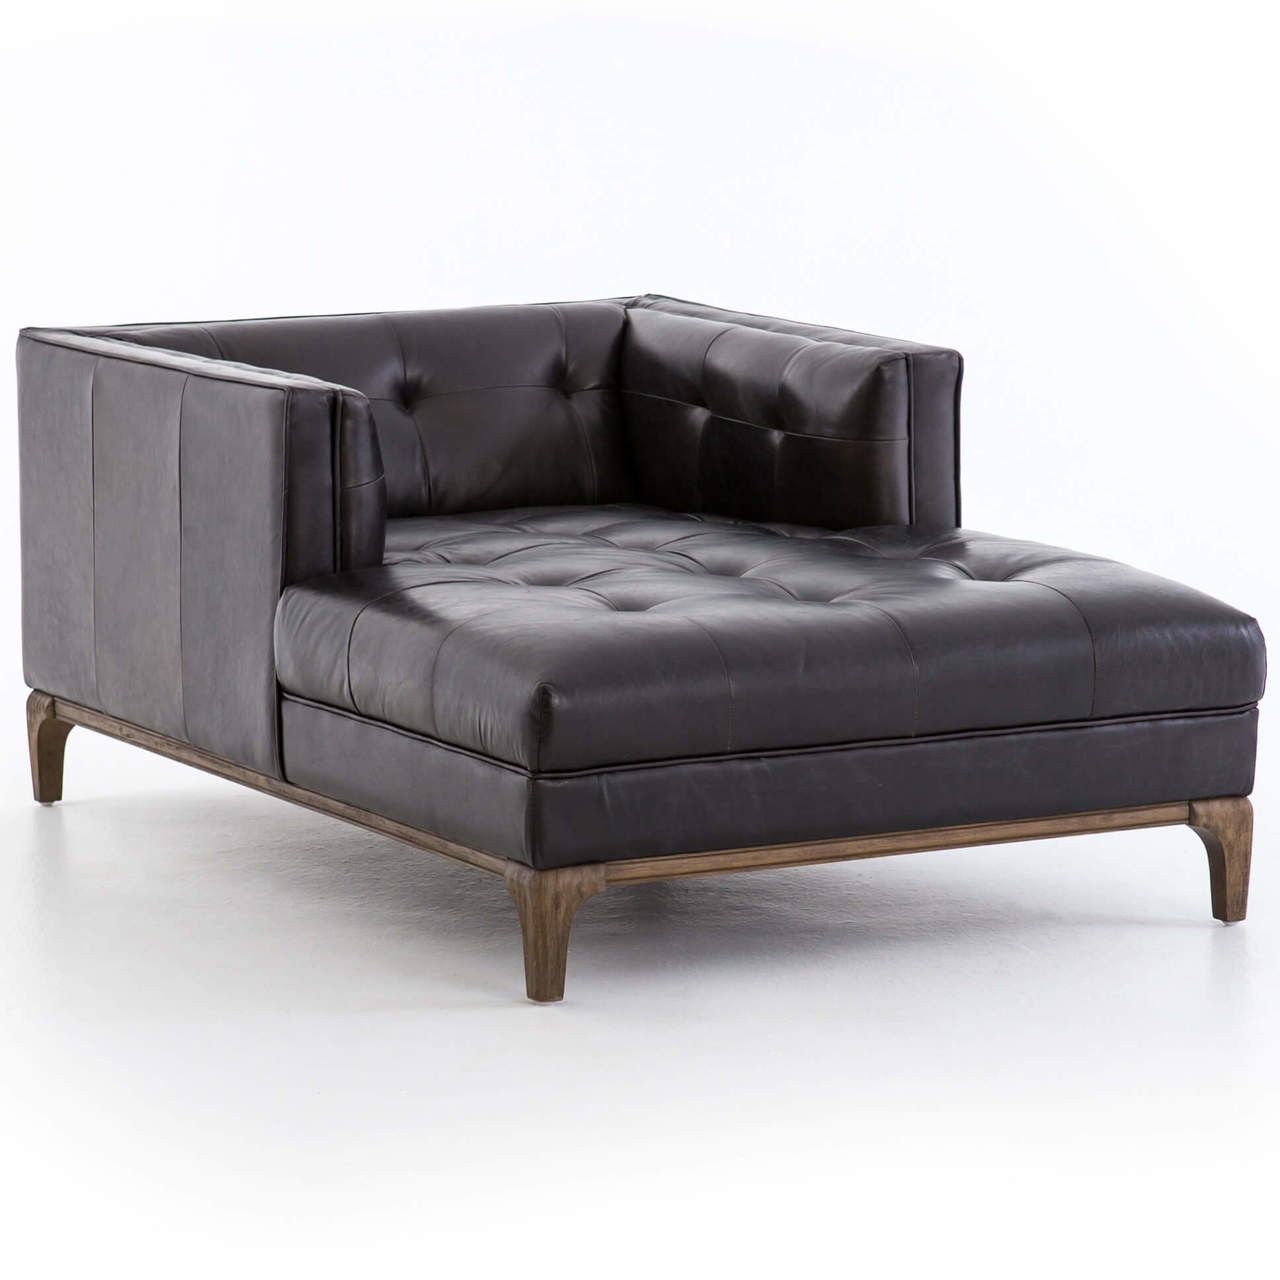 Dylan Mid Century Modern Black Leather Chaise Lounge